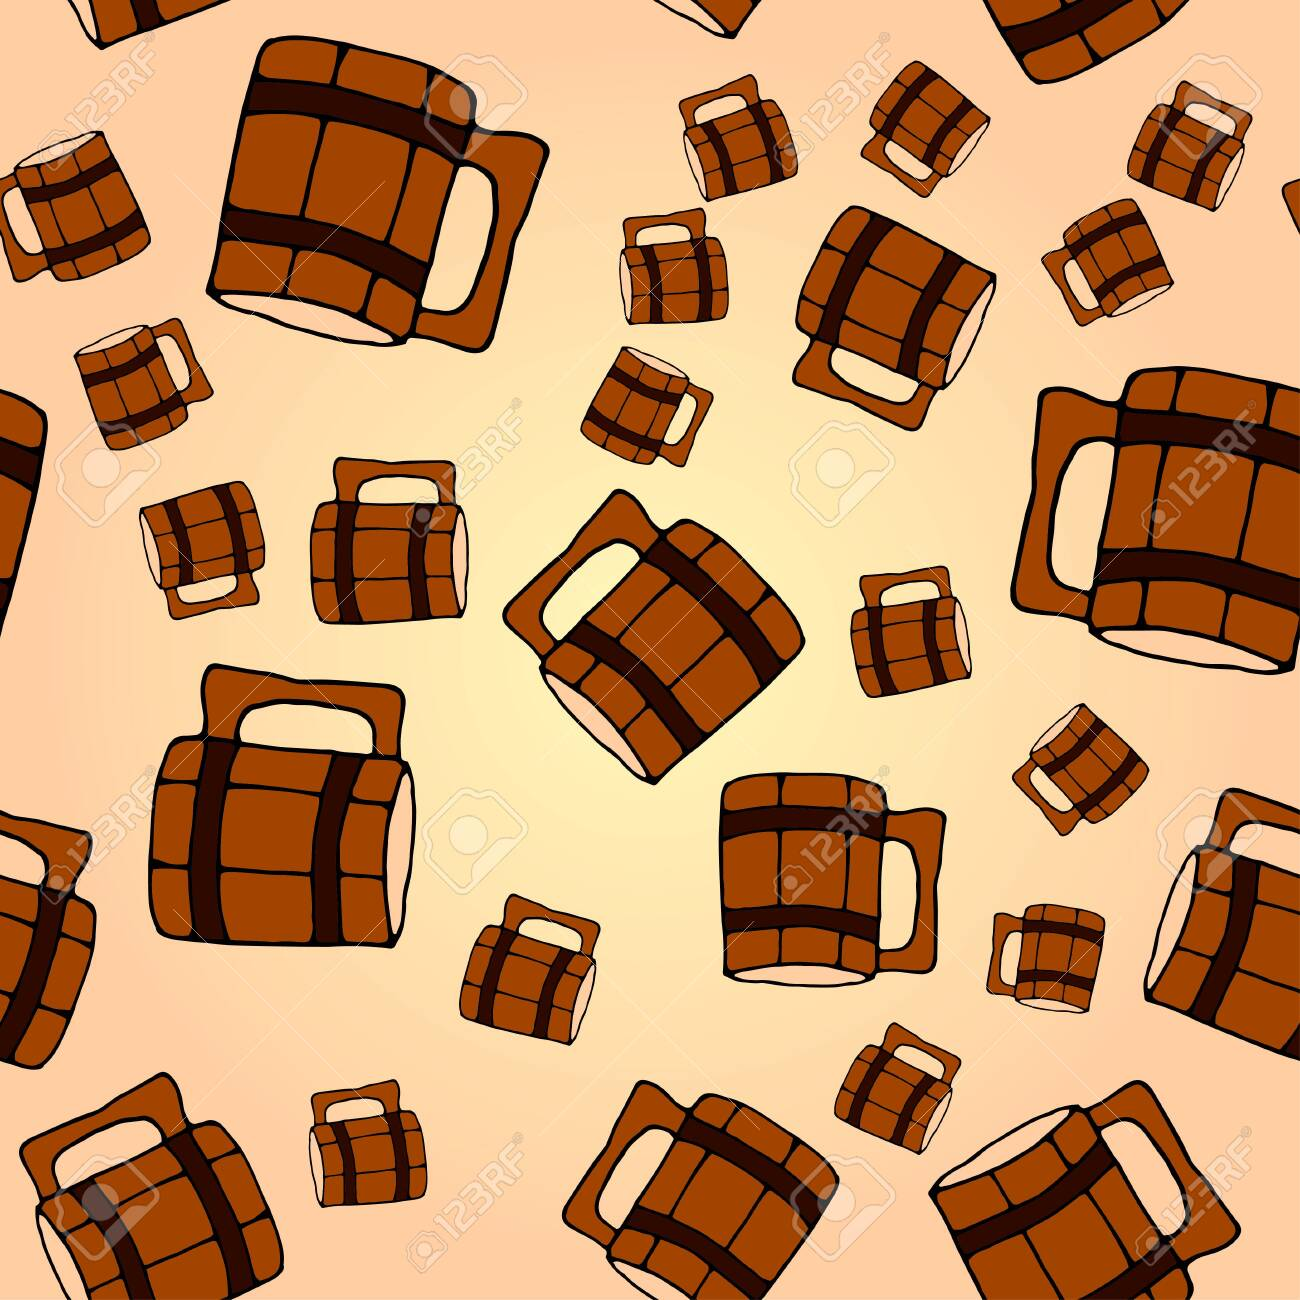 Seamless Pattern With A Wooden Beer Mug Colorful Hand Drawn Royalty Free Cliparts Vectors And Stock Illustration Image 146295013